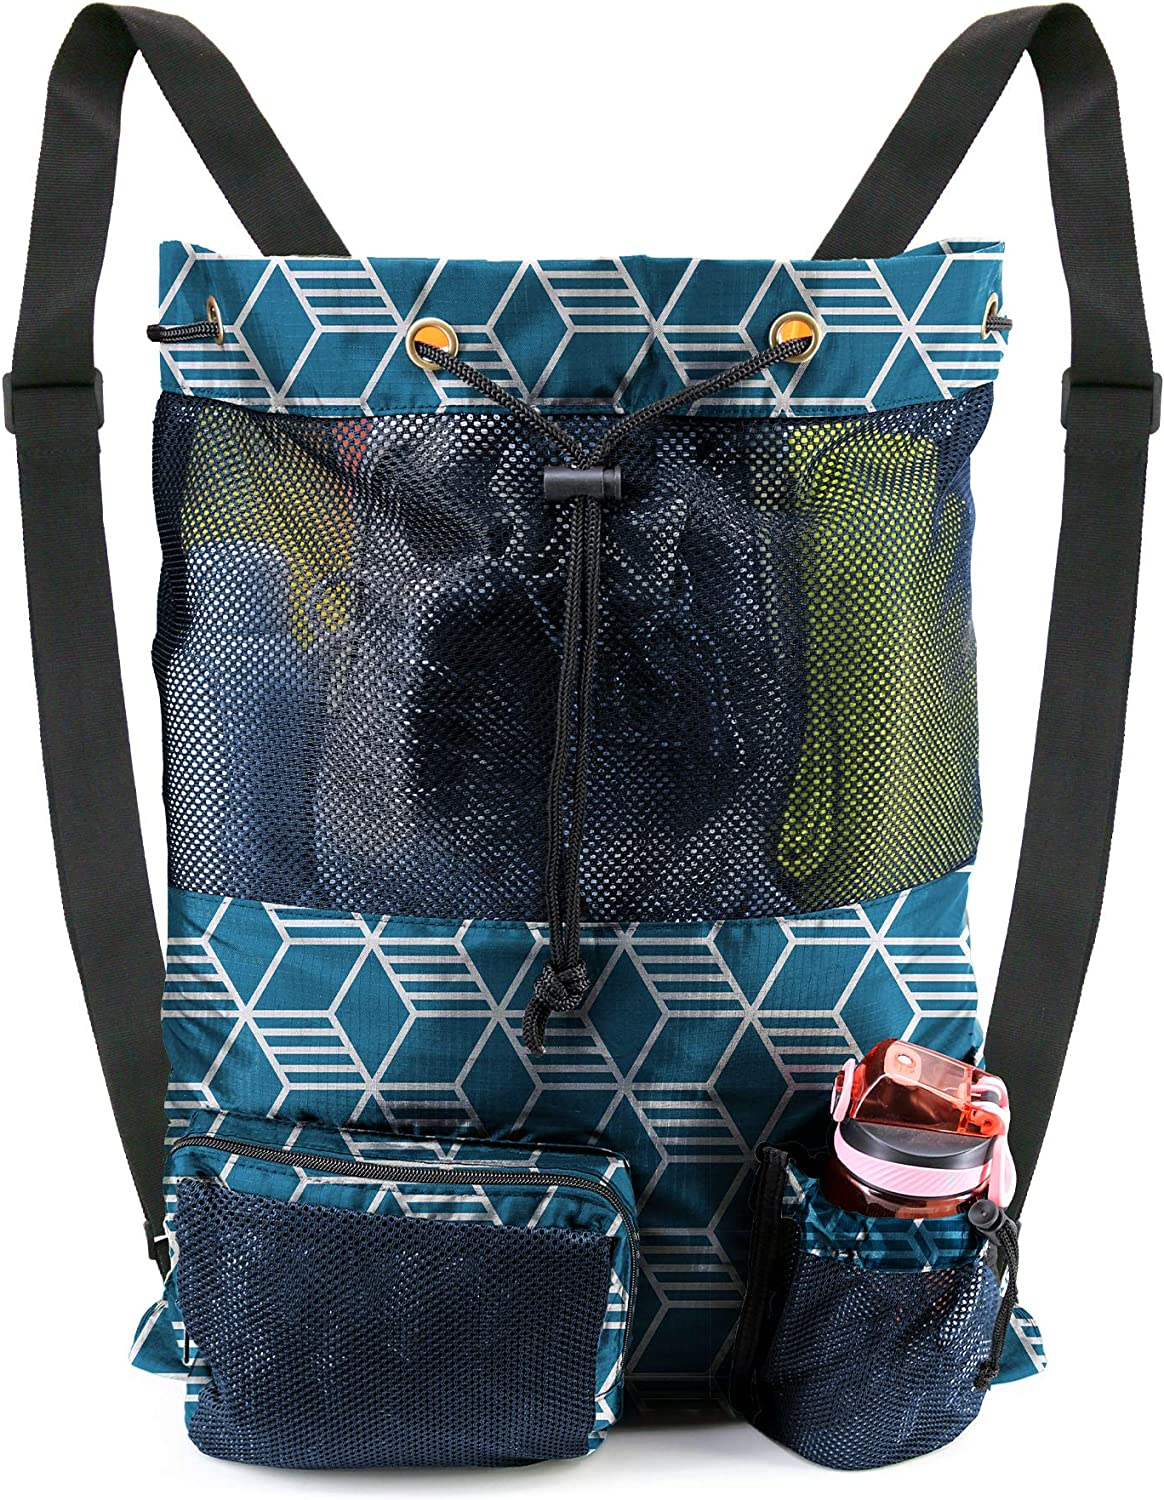 ! Super beauty product restock quality top! BeeGreen Storage Sales of SALE items from new works Swimming Pool Bag Backpack Mesh 1 String Piece